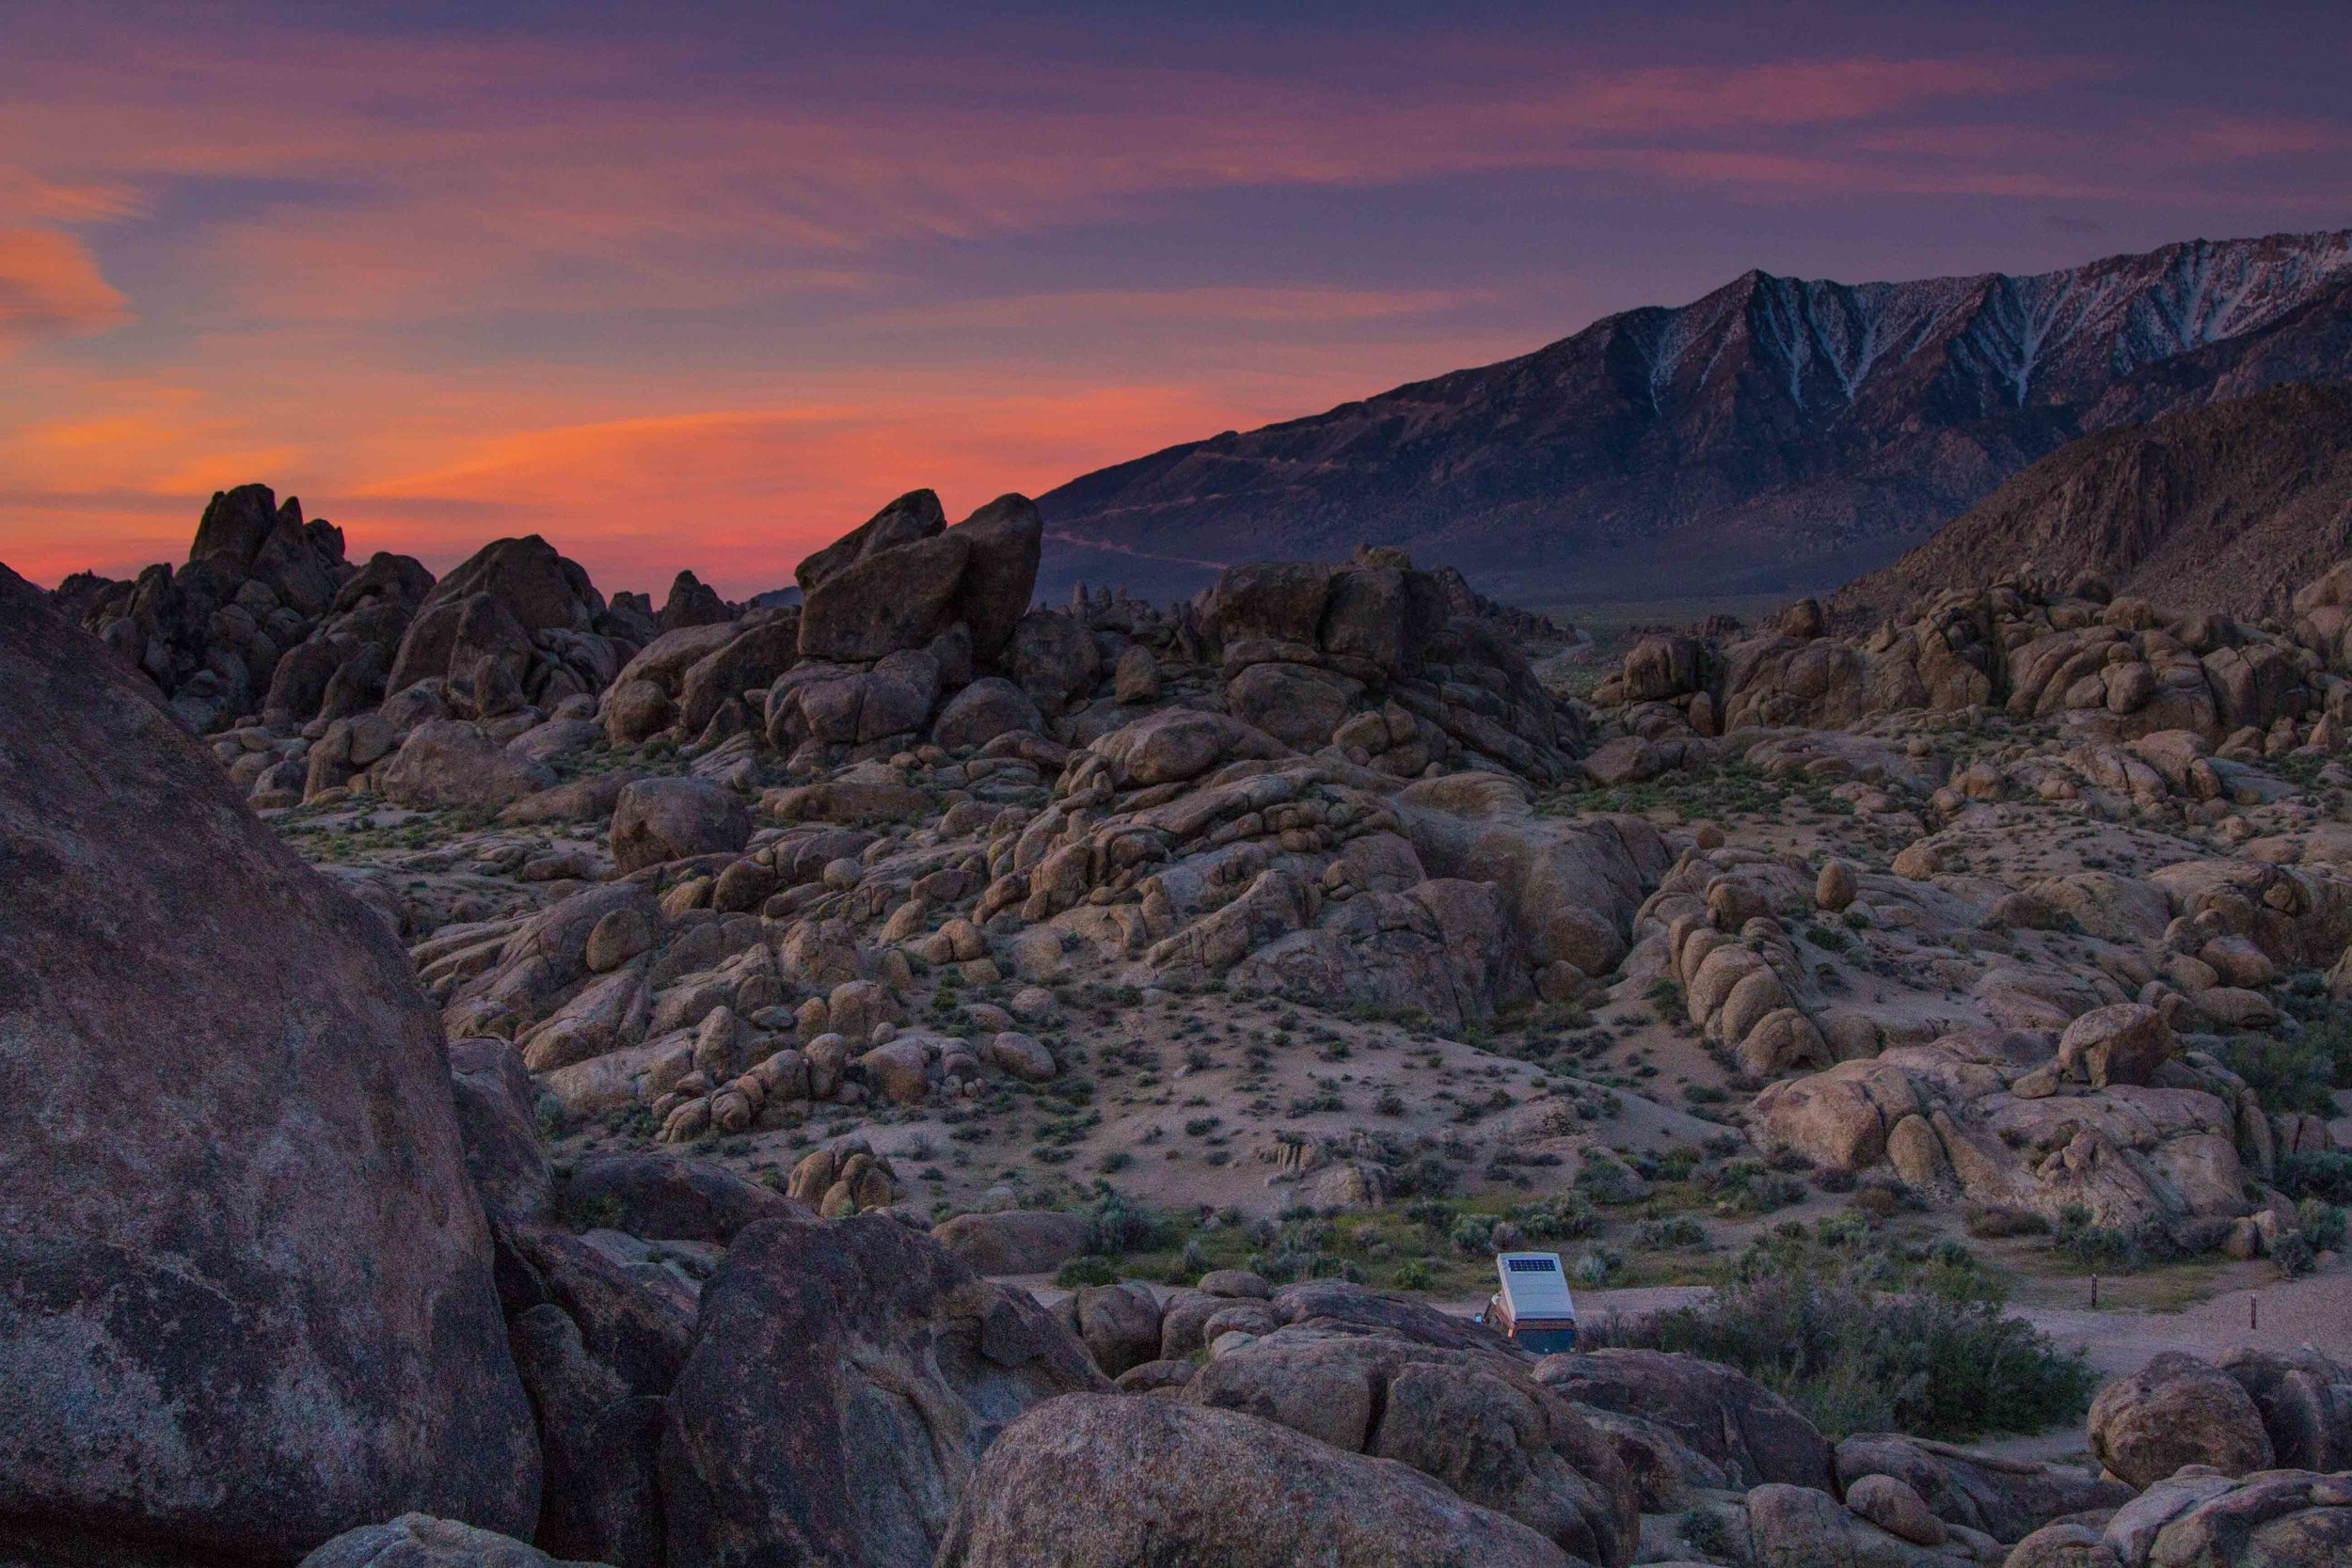 Alabama Hills Free Camping BLM Land Vanlife (6 of 9).jpg